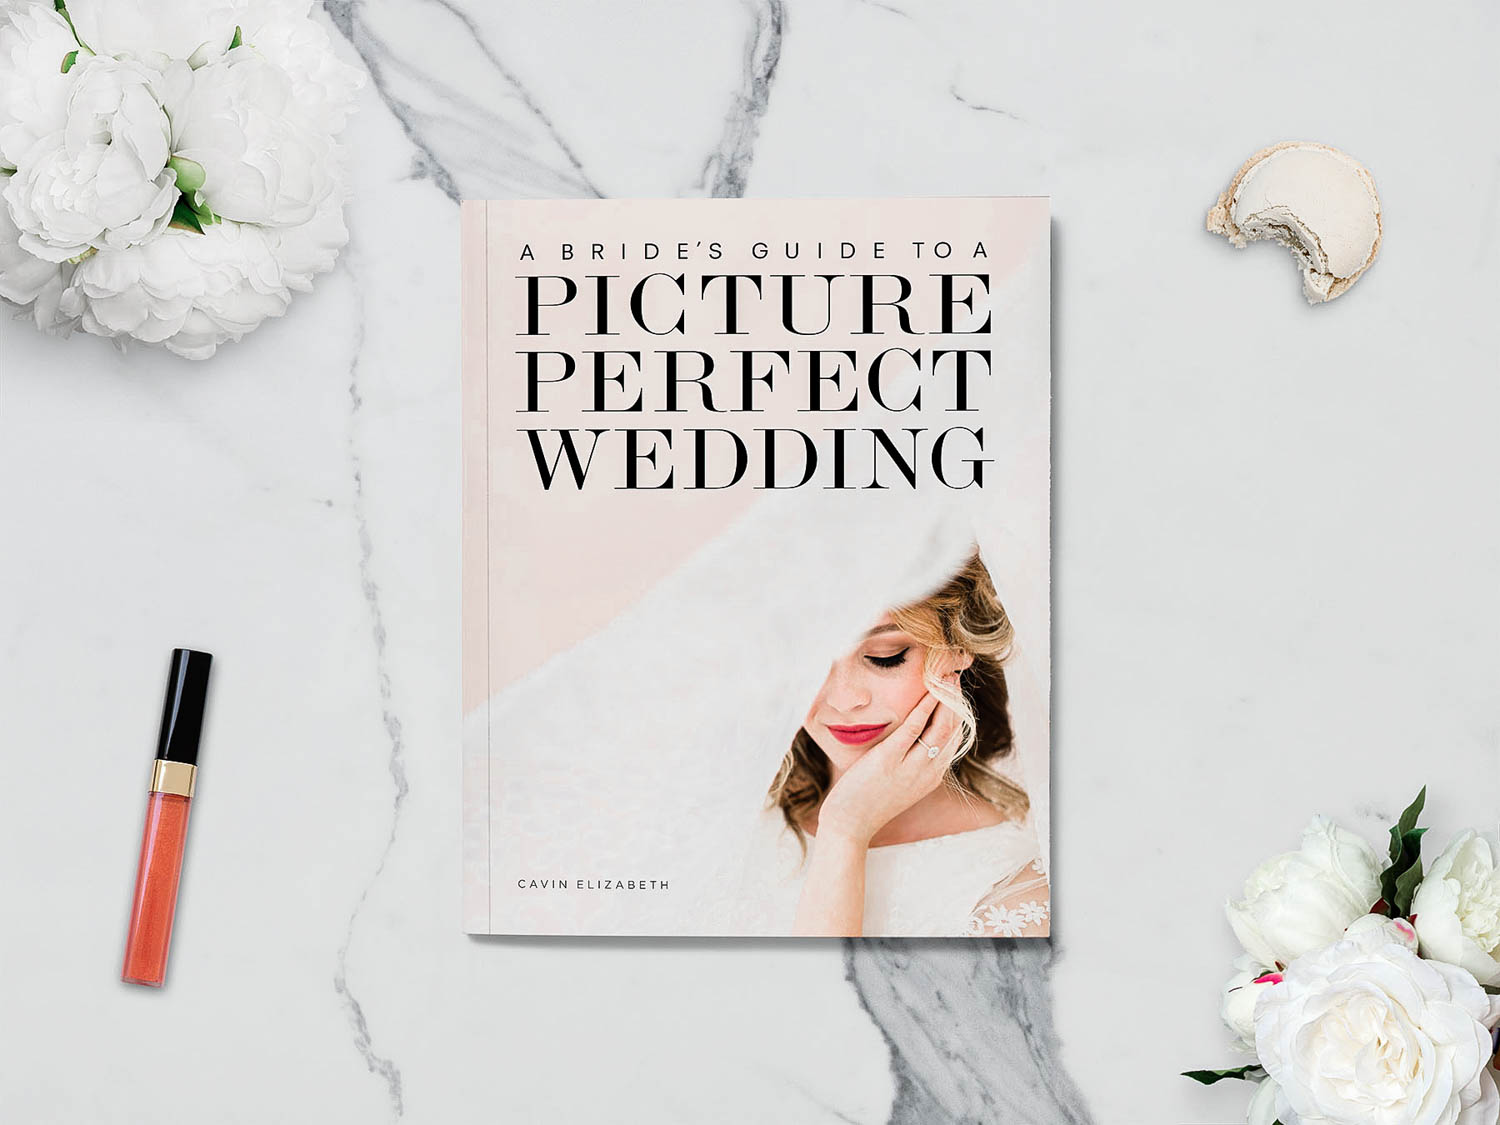 Cavin Elizabeth Book Launch of A Bride's Guide to A Picture Perfect Wedding